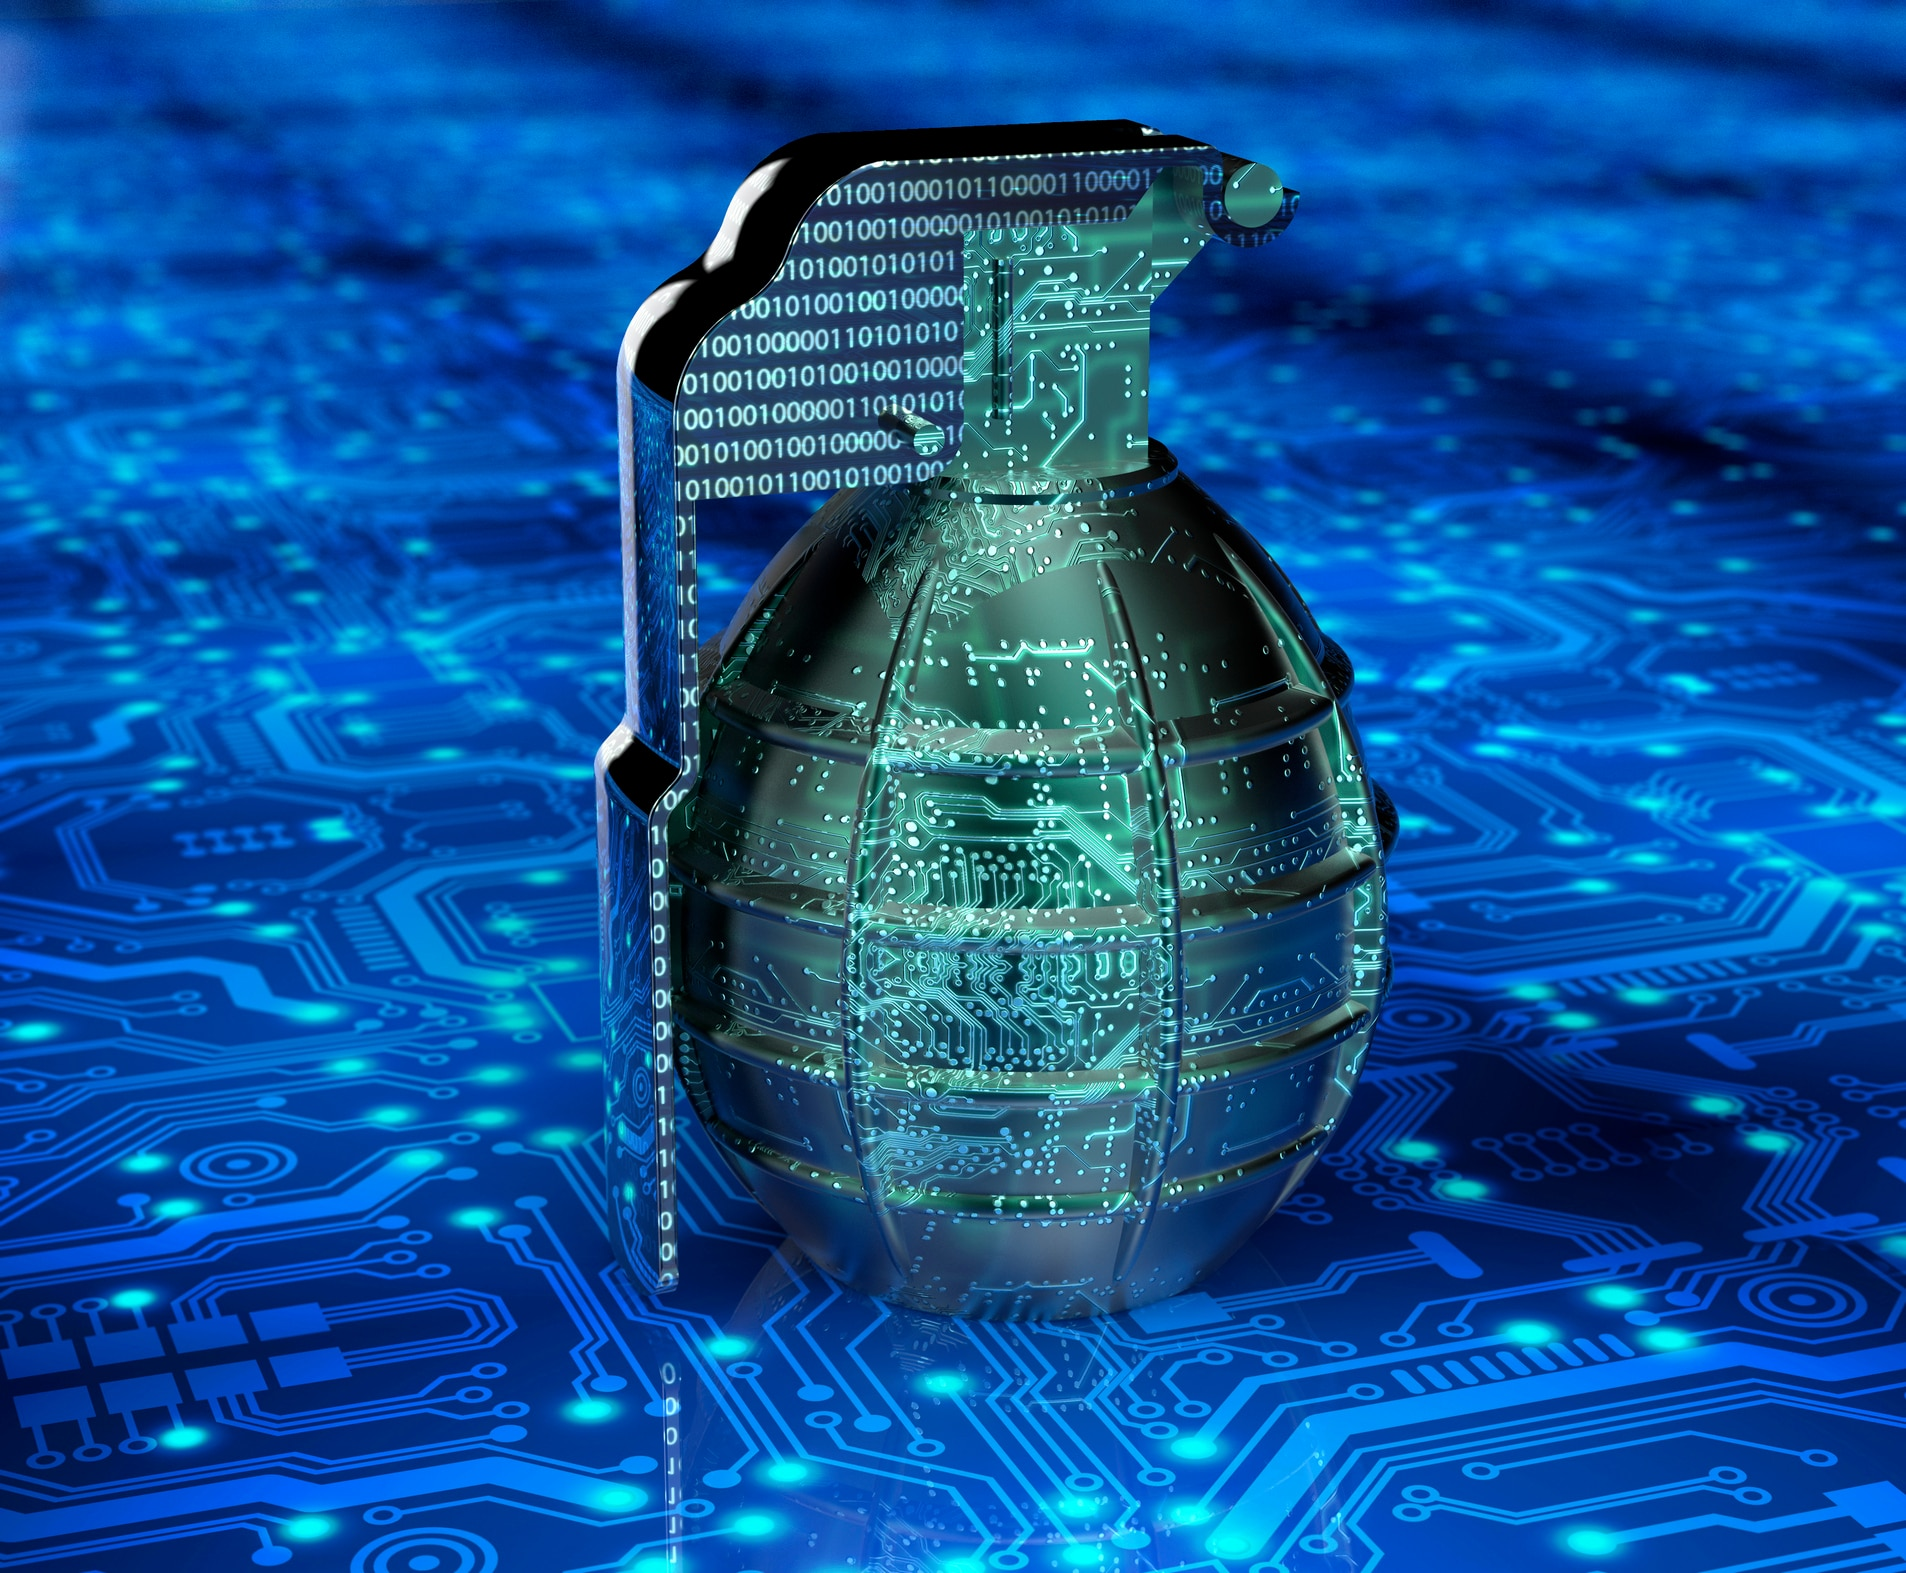 The types of tools an independent Cyber Command will need